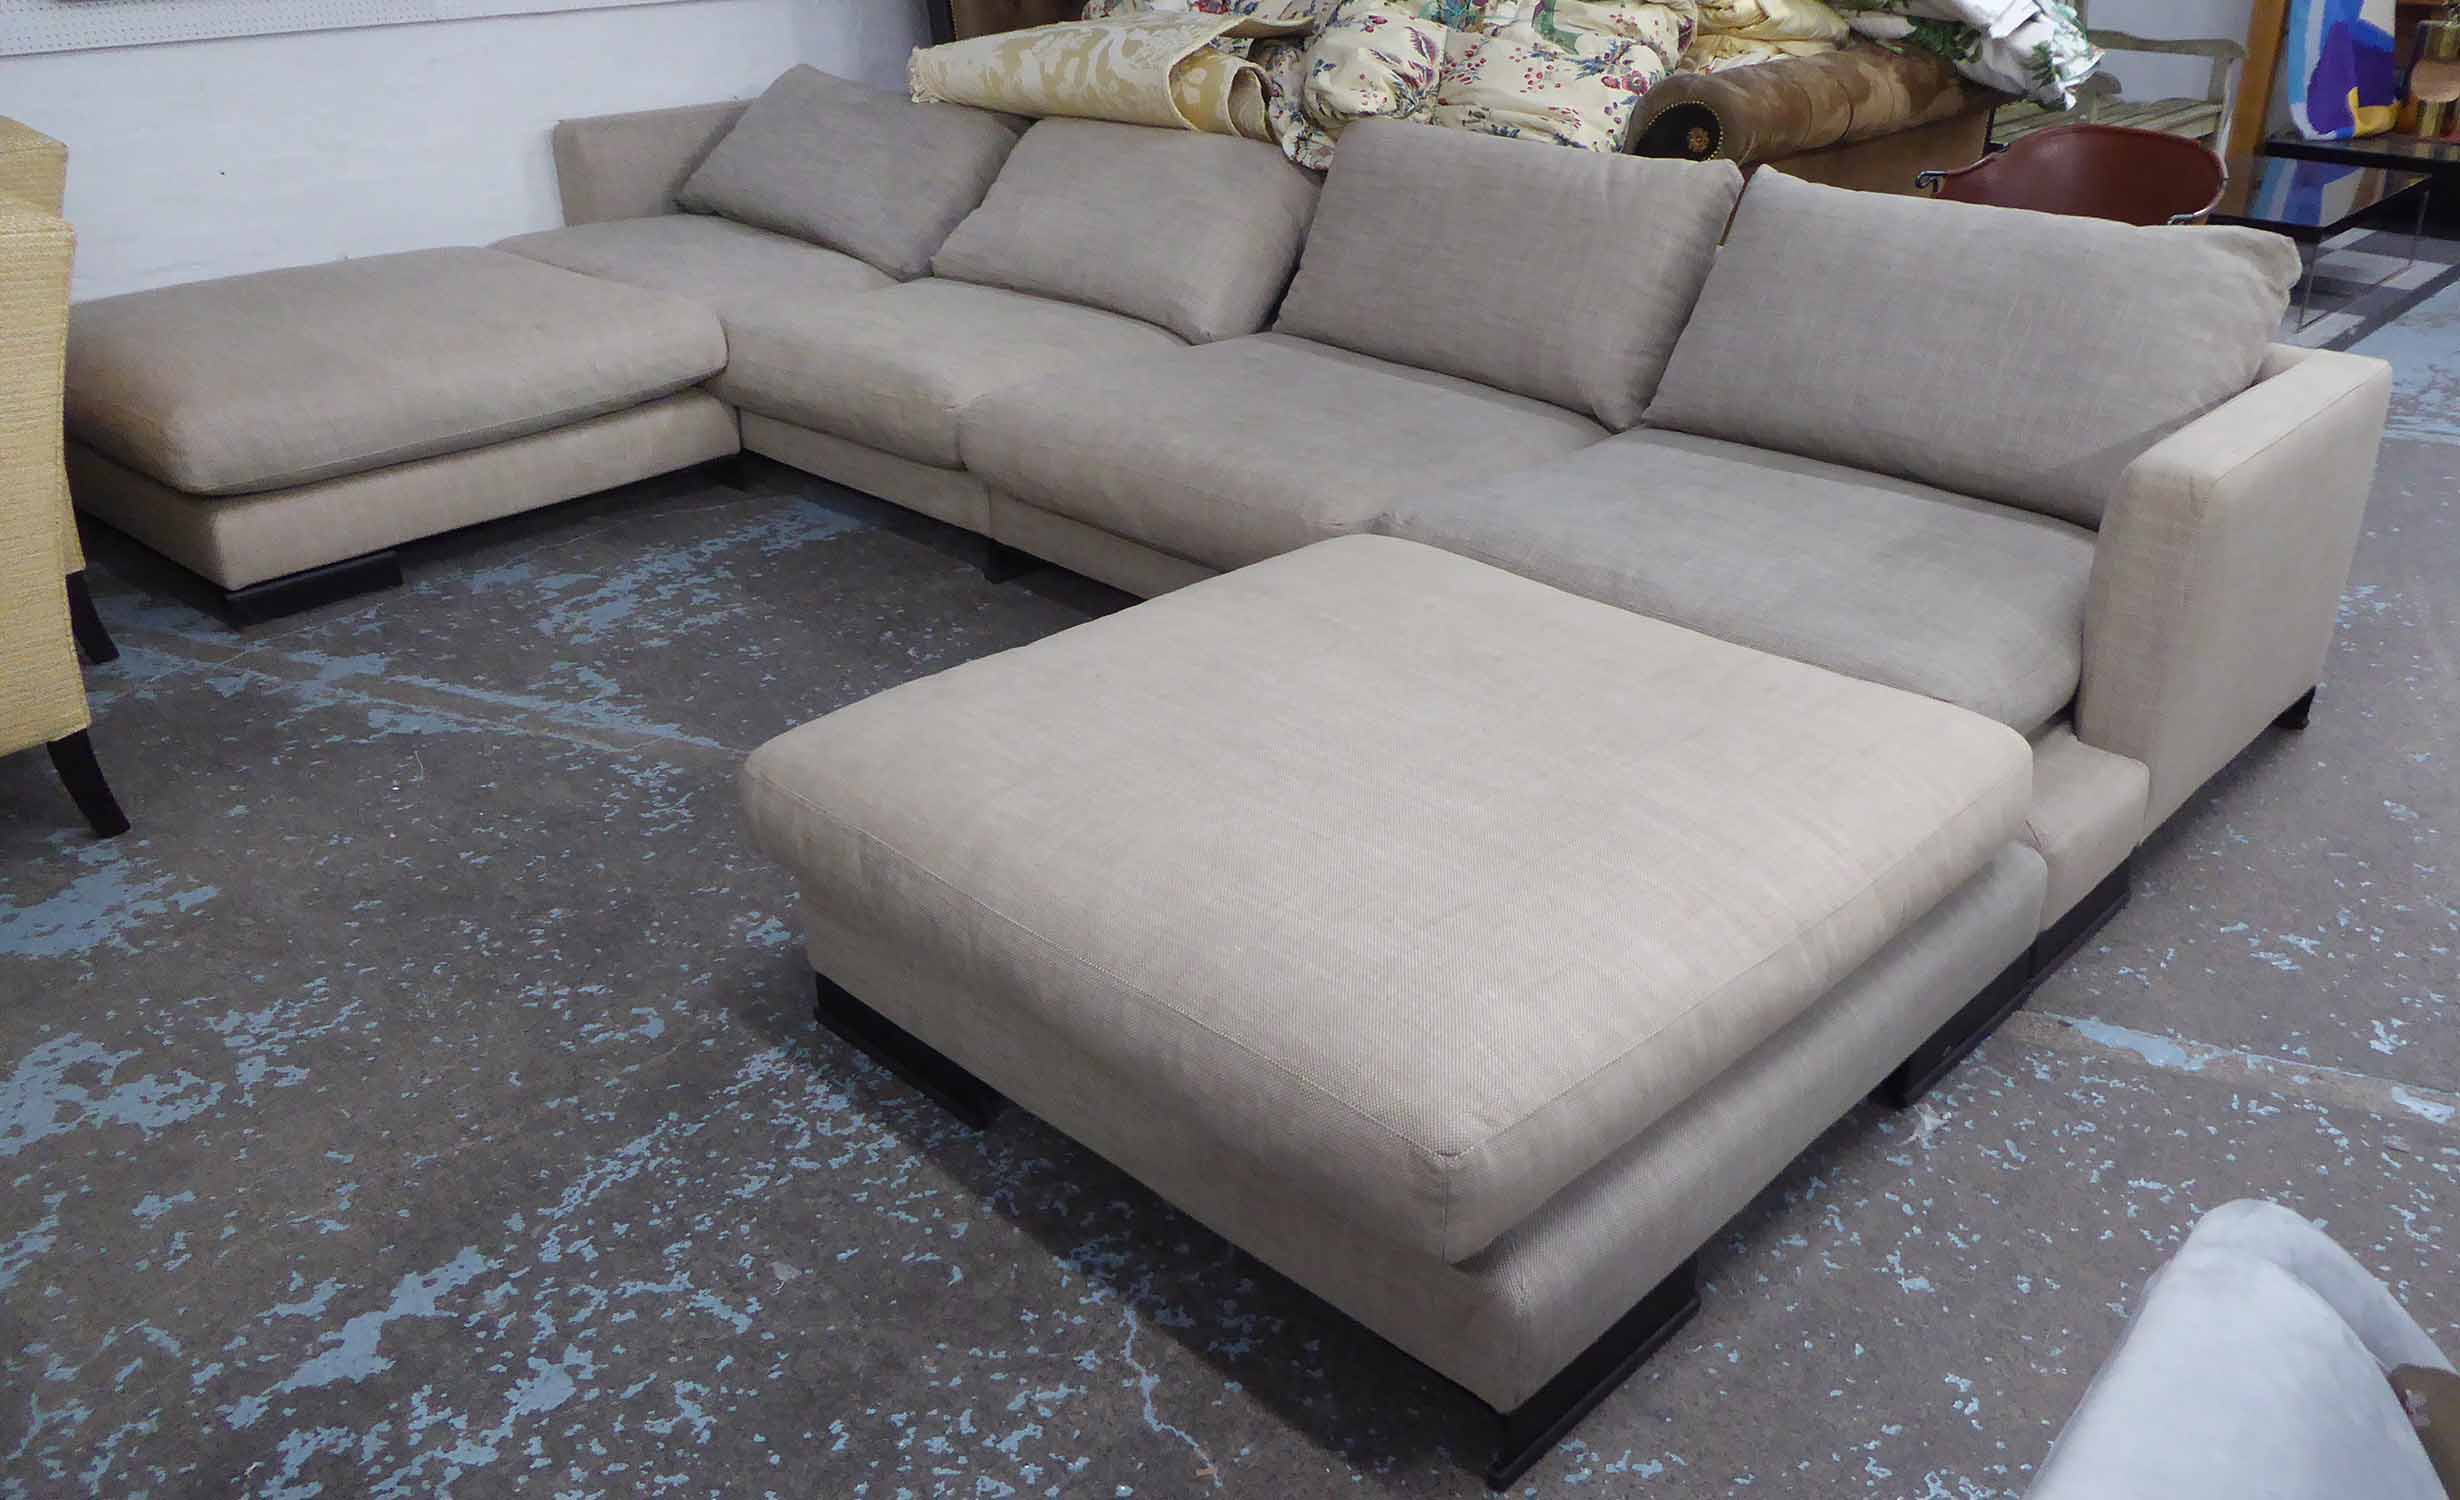 Lot 42 - CAMERICH CORNER SOFA, in oatmeal upholstery with two footstools (comes in two parts), 430cm L.